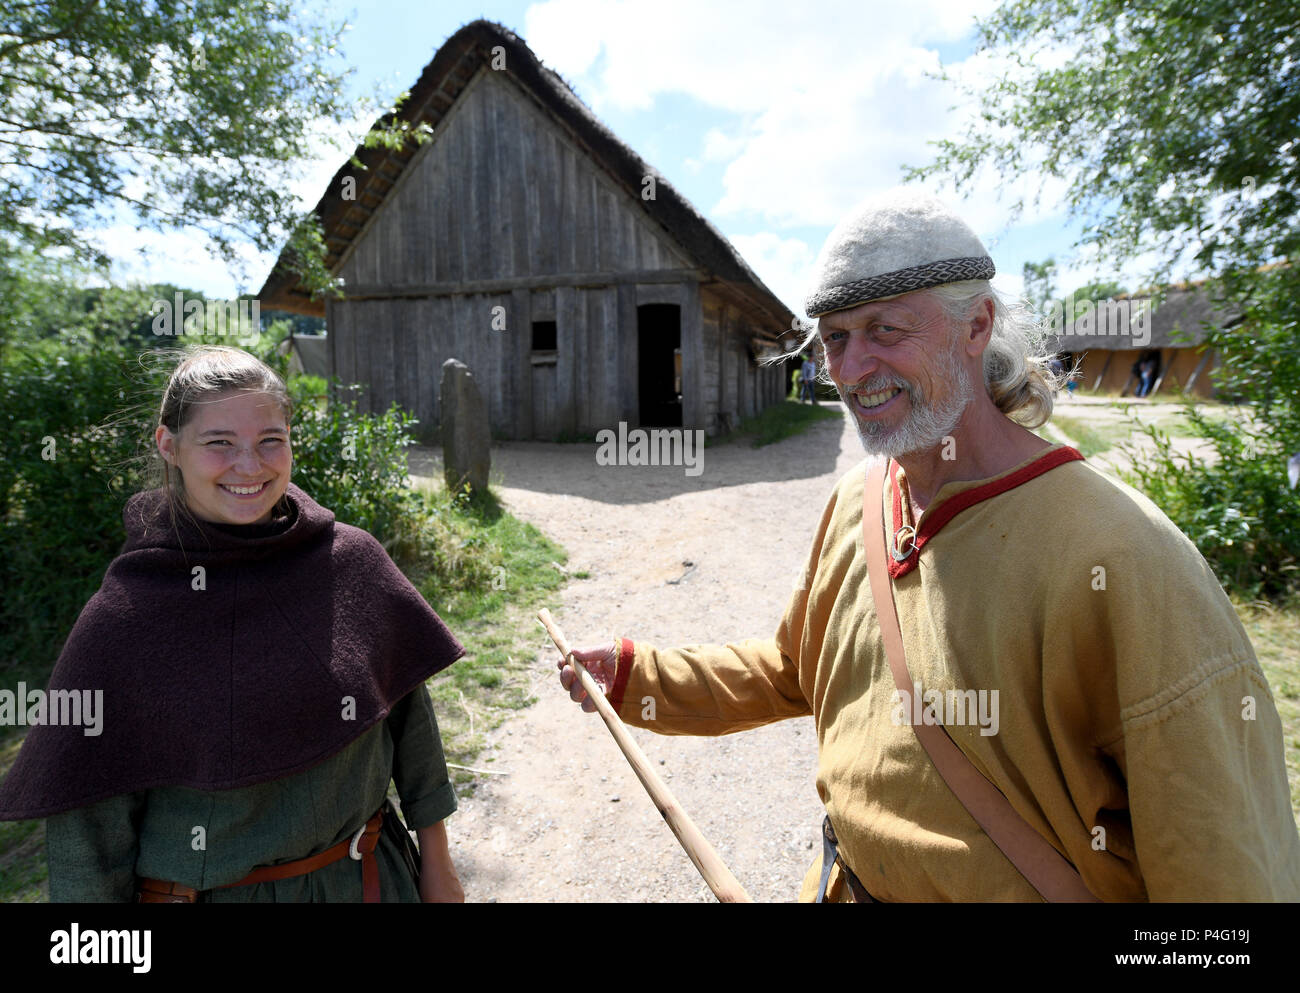 Danewerk, Germany. 19th June, 2018. Workers in authentic Viking clothing standing on the site of the Viking houses in Hedeby. The UNESCO world heritage committee will decide on the admission of new monuments to its list at a session between the 24 June and 3 July. The Viking sites Hedeby and Danevirke are Germany's applicants. Credit: Carsten Rehder/dpa/Alamy Live News - Stock Image